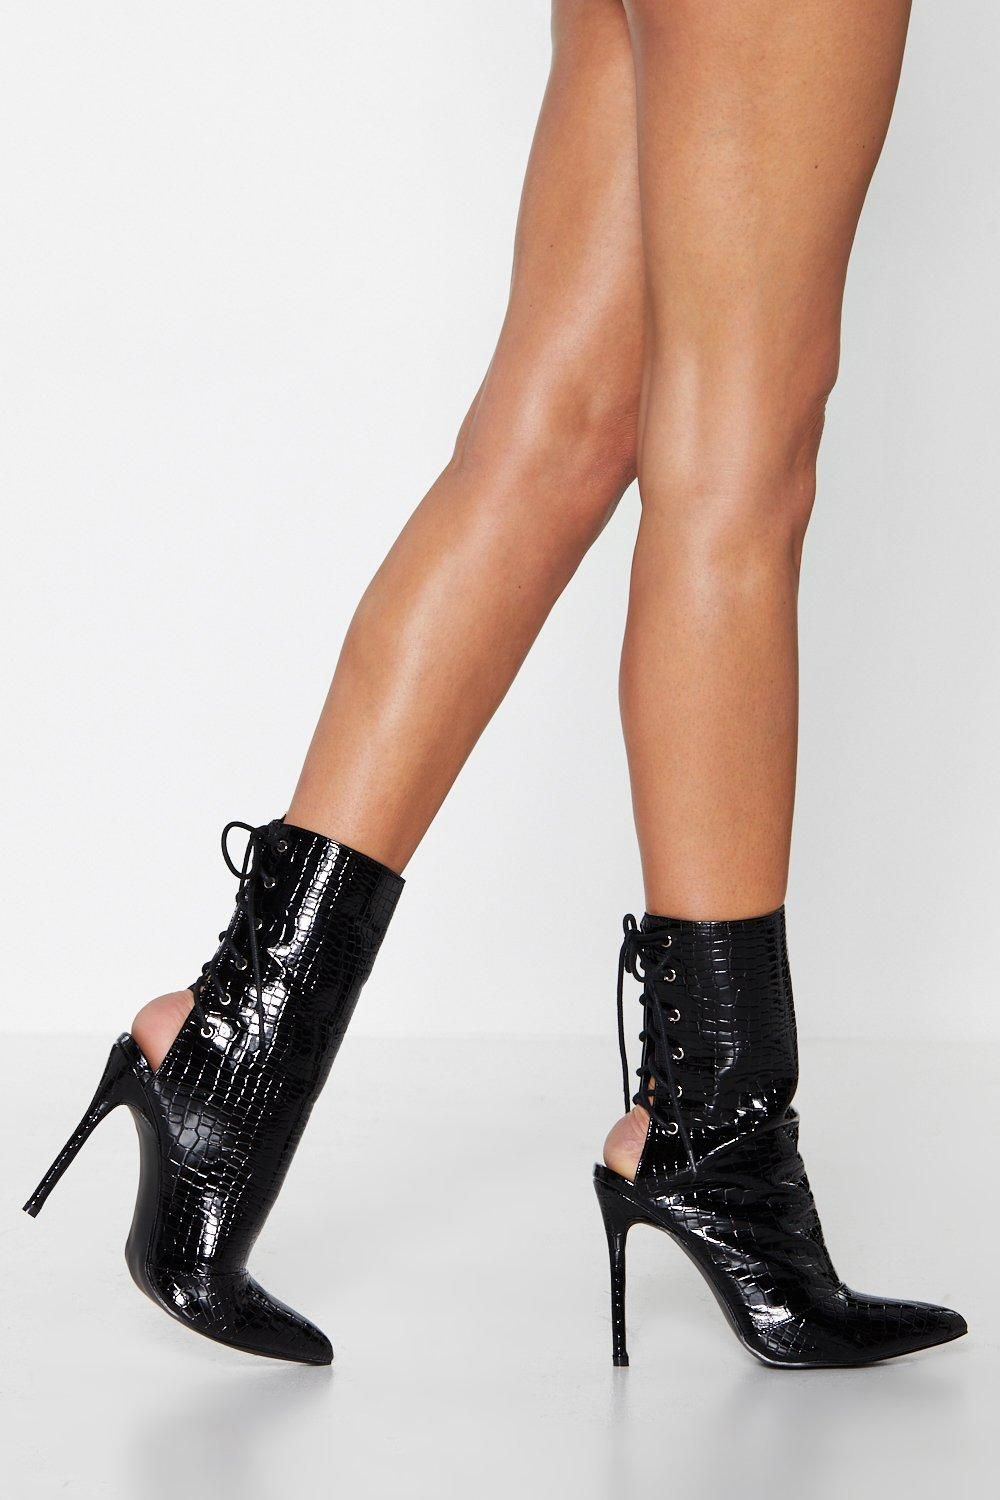 Fit to Kill Croc Boot | Shop Clothes at Nasty Gal in 2019